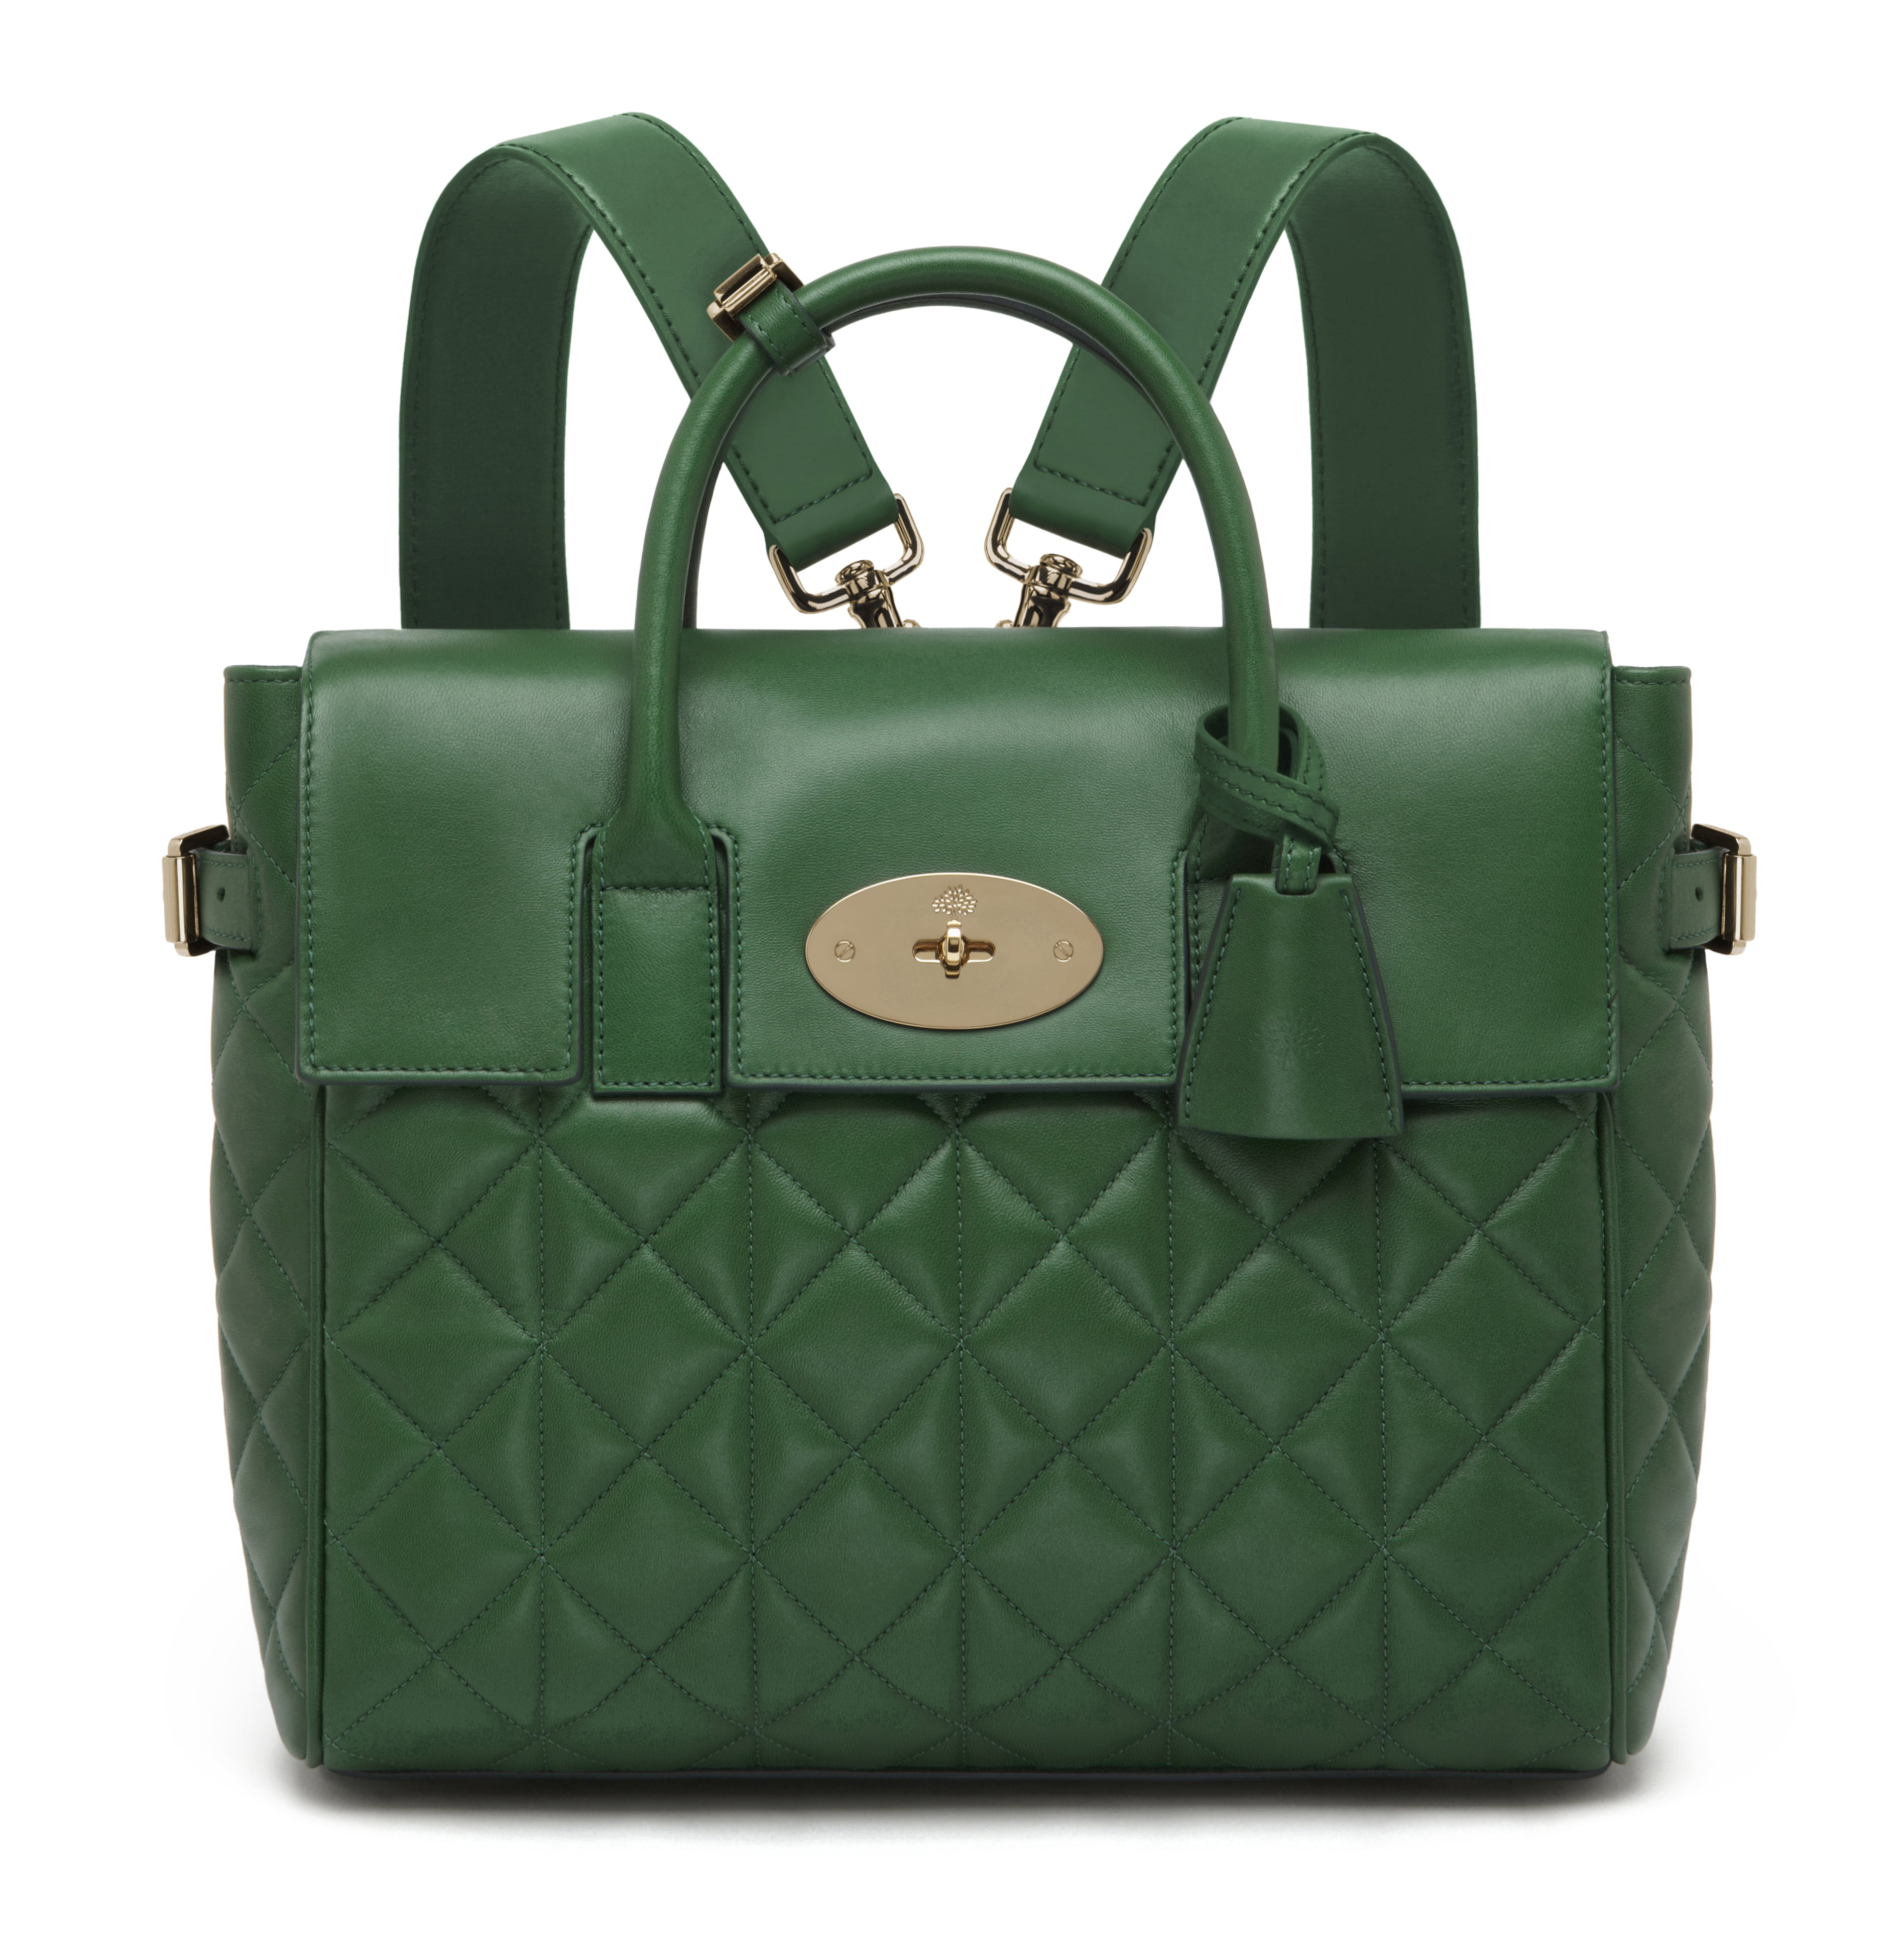 Cara Delevingne Bag in Delevingne Green Quilted Nappa